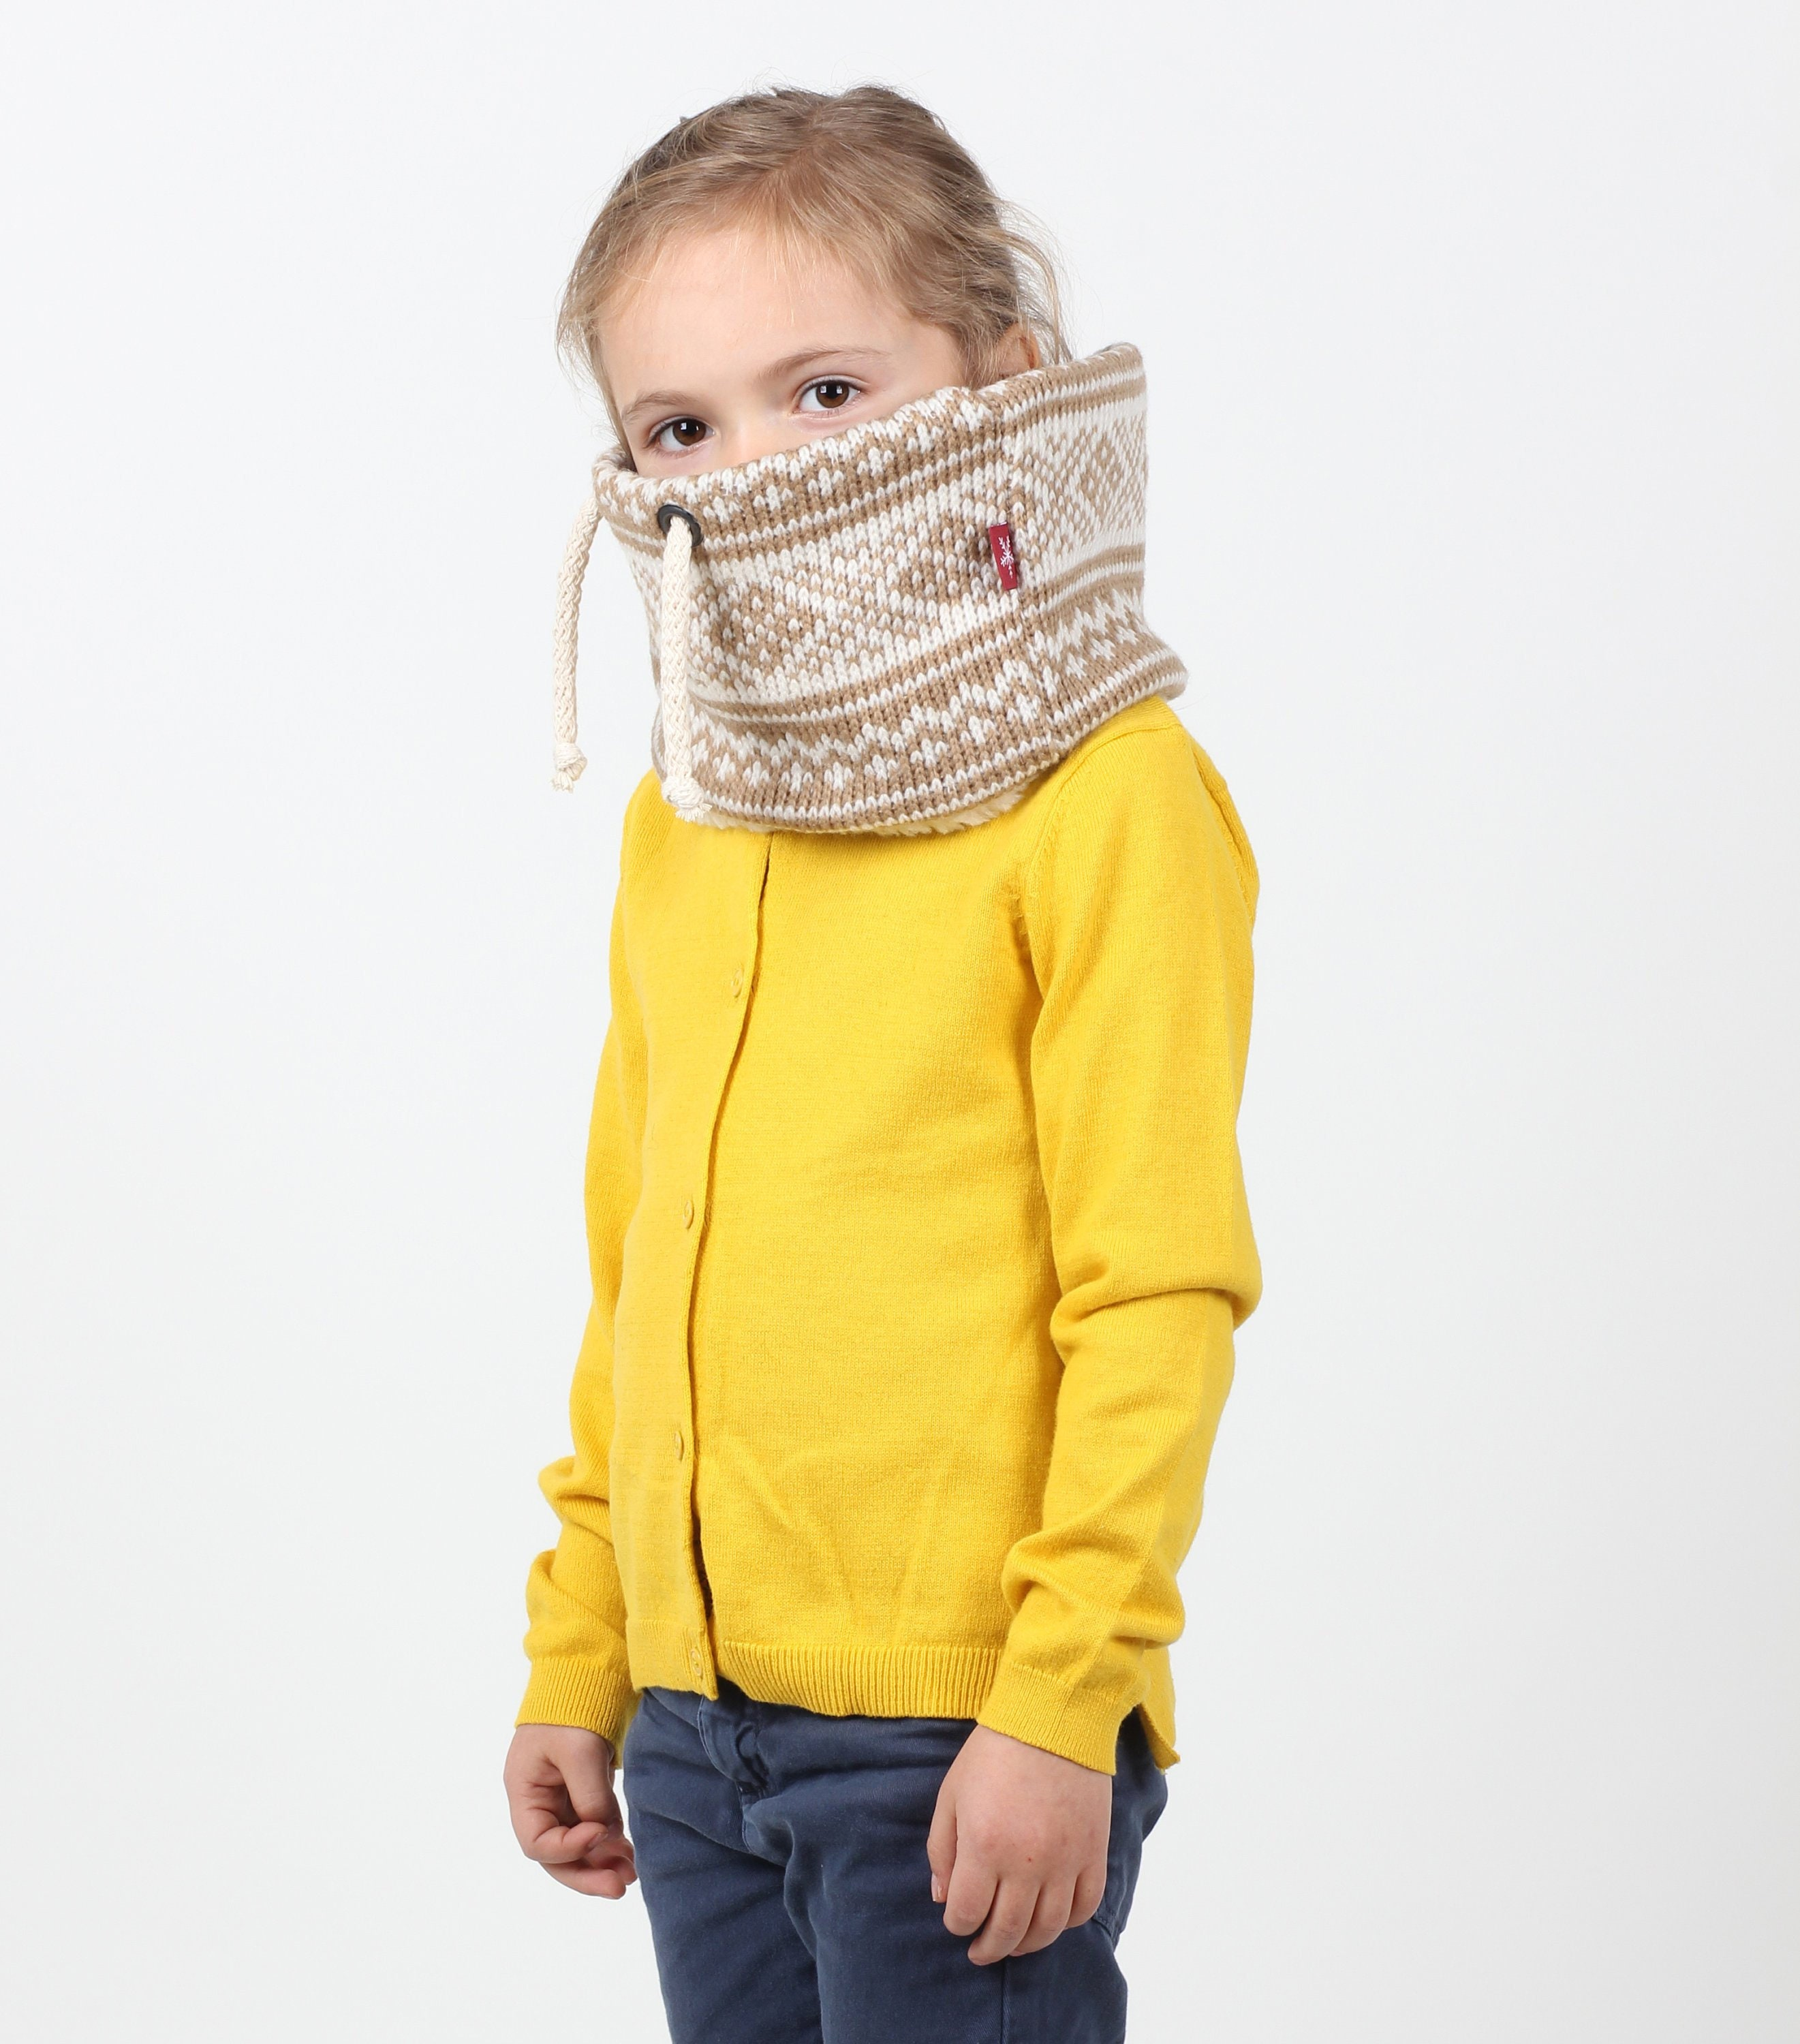 Kids Unisex Chunky Knit Cowl Or Scarf In Super Cute Nordic Pattern